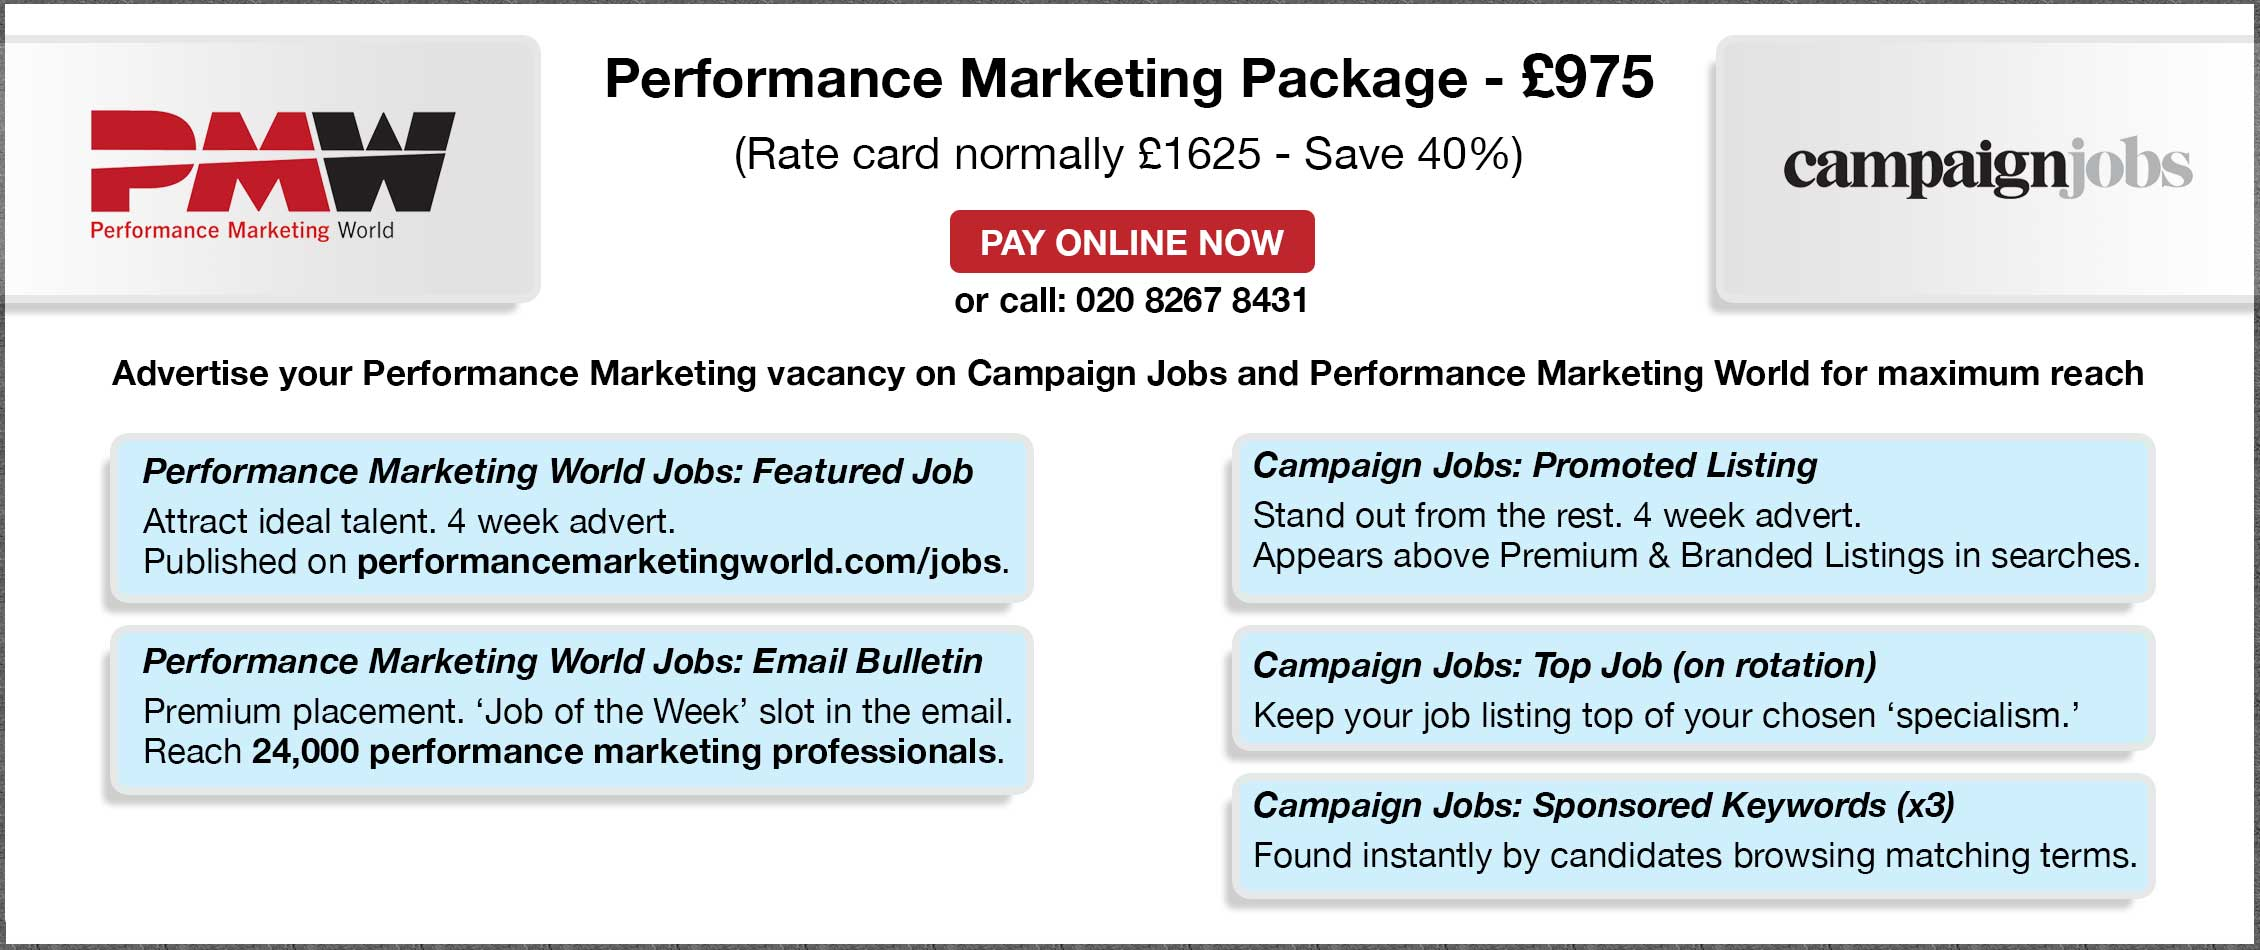 Performance Marketing Package - £975. Rate card normally: £1625 - Save 40%). Pay online now or call: 020 8267 8431. Advertise your Performance Marketing vacancy on Campaign Jobs and Performance Marketing World for maximum reach.  PMW Jobs: Featured Job.  Attract ideal talent. Published on performancemarketingworld.com/jobs. PMW Jobs: Email Bulletin.  Premium placement. 'Job of the Week' slot in the email. Reach 24,000 performance marketing professionals.  Cam Jobs: Promoted Listing.  Stand out from the rest. 4 week advert.  Appears above Premium & Branded Listings in searches. Cam Jobs: Top Job (on rotation).  Keep your job listing top of your chosen 'function' page. Cam Jobs: Sponsored Keywords (x3).  Found instantly by candidates browsing matching terms.